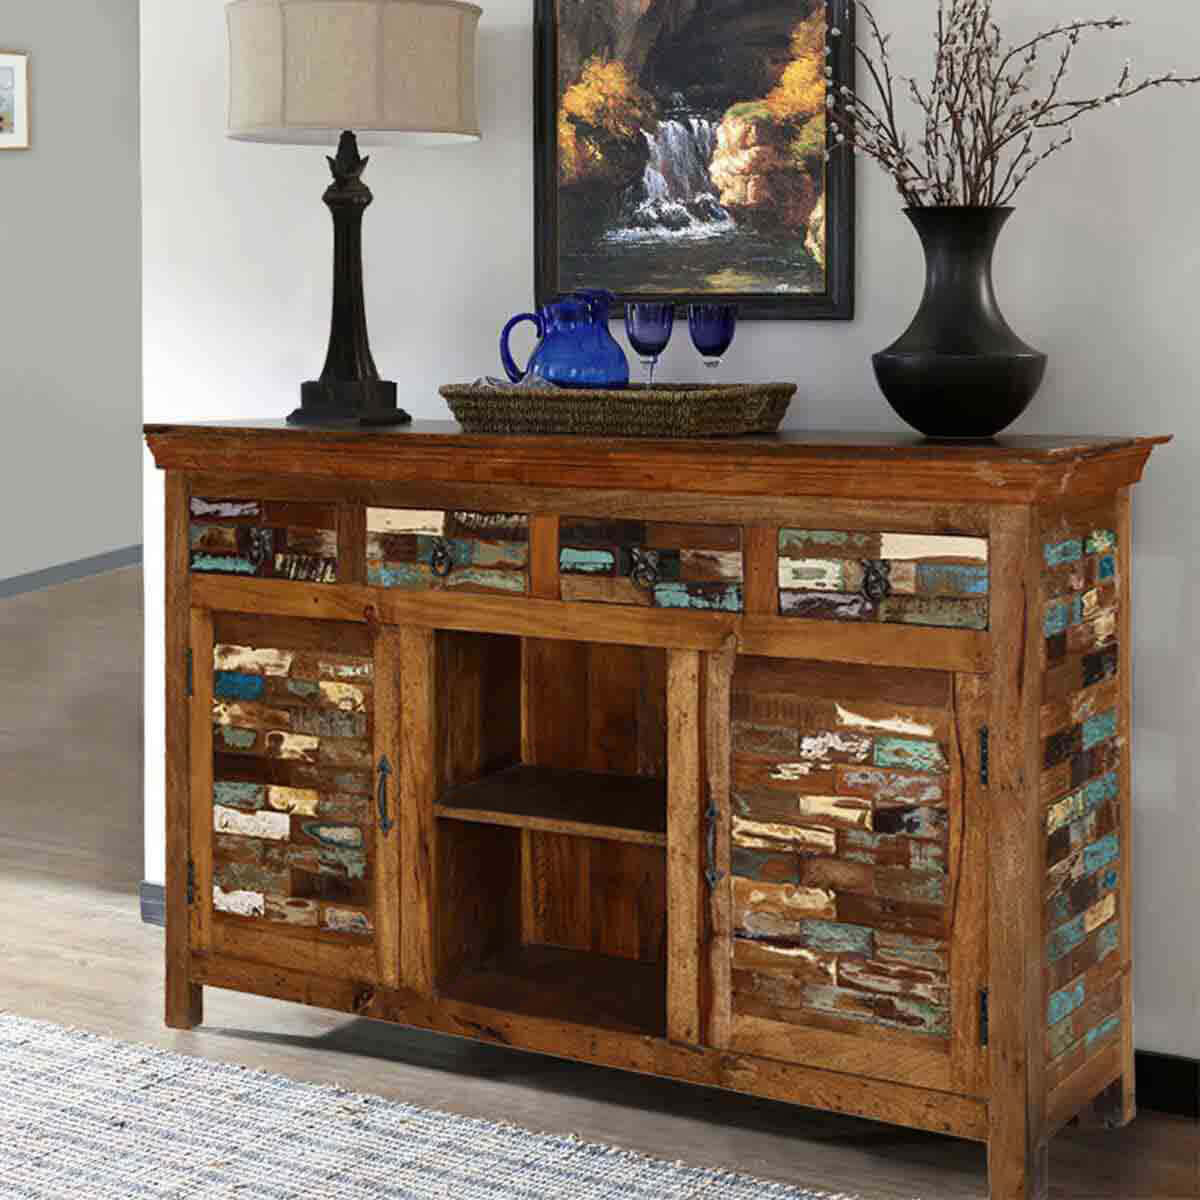 Sideboard Cabinet Tangier Mosaic Rustic Reclaimed Wood 4 Drawer Accent